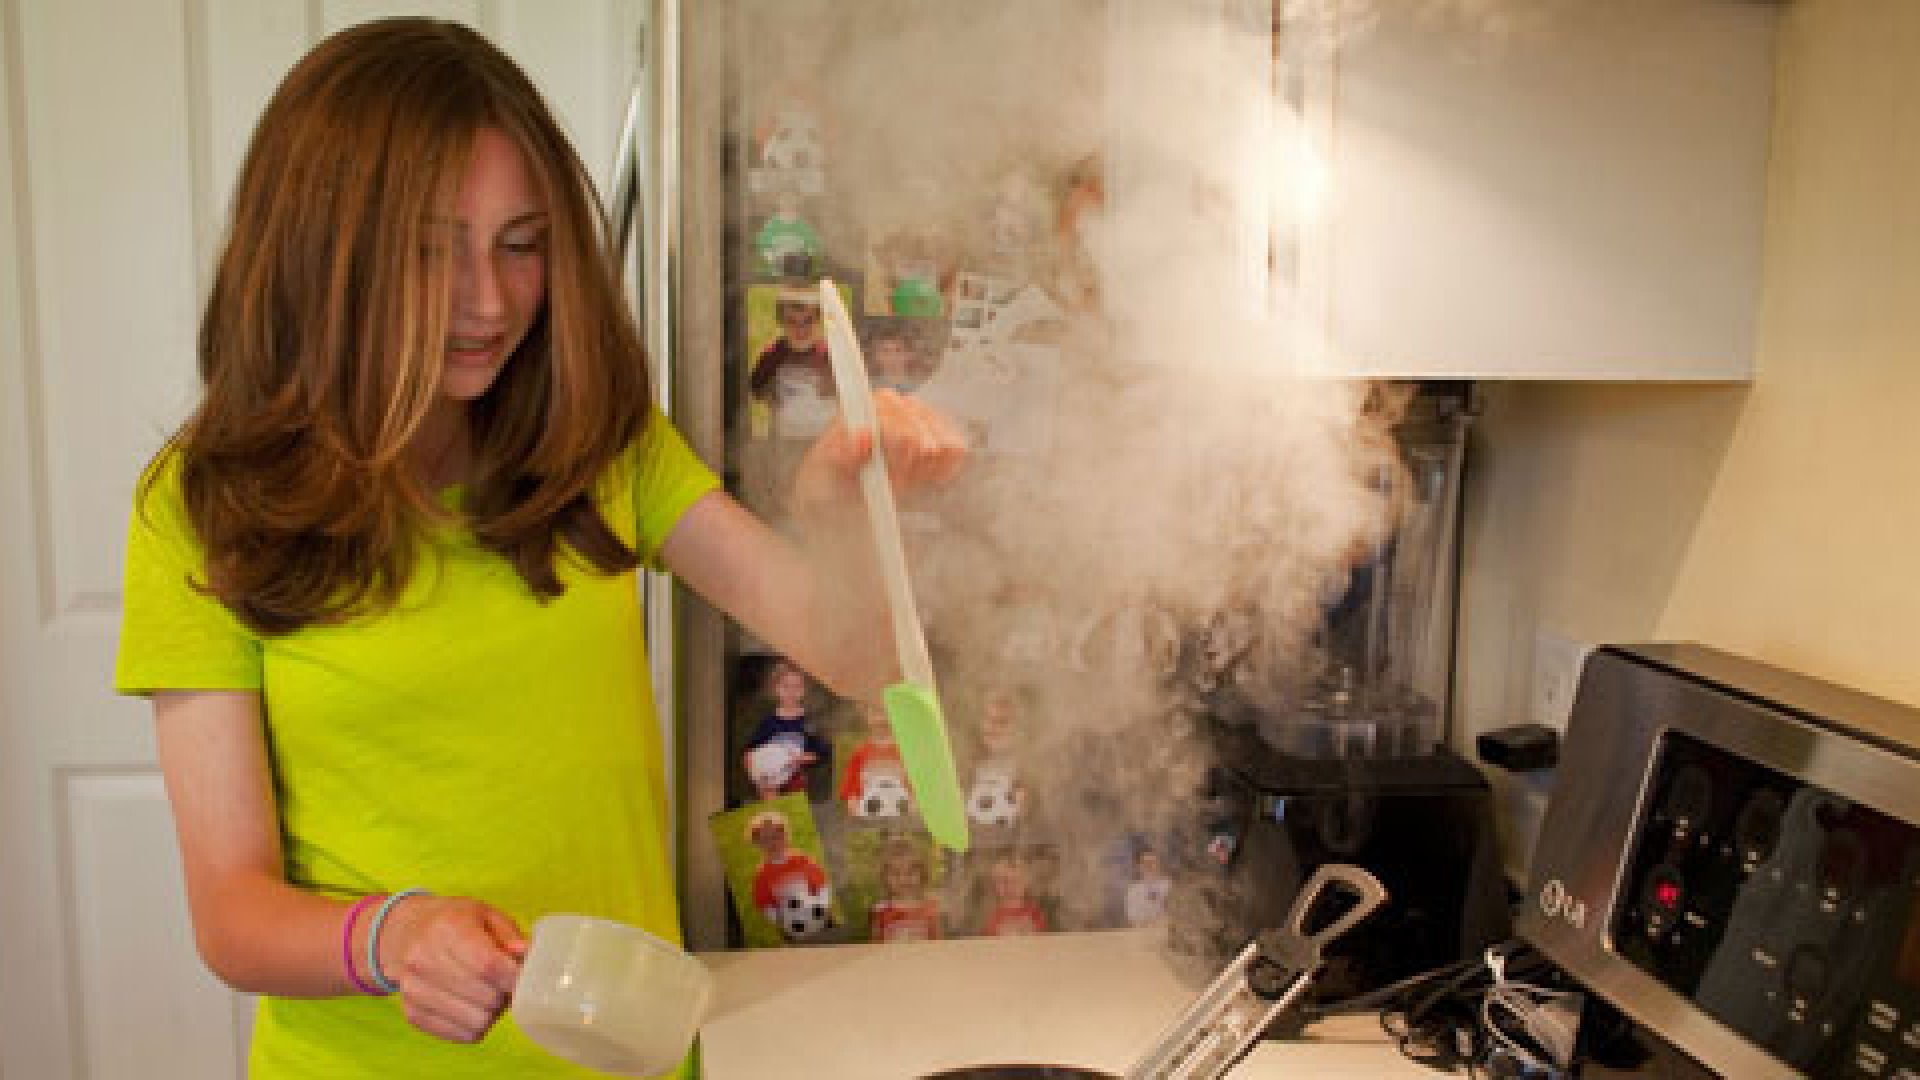 Mallory Kievman, the 13-year-old entrepreneur behind Hiccupops.